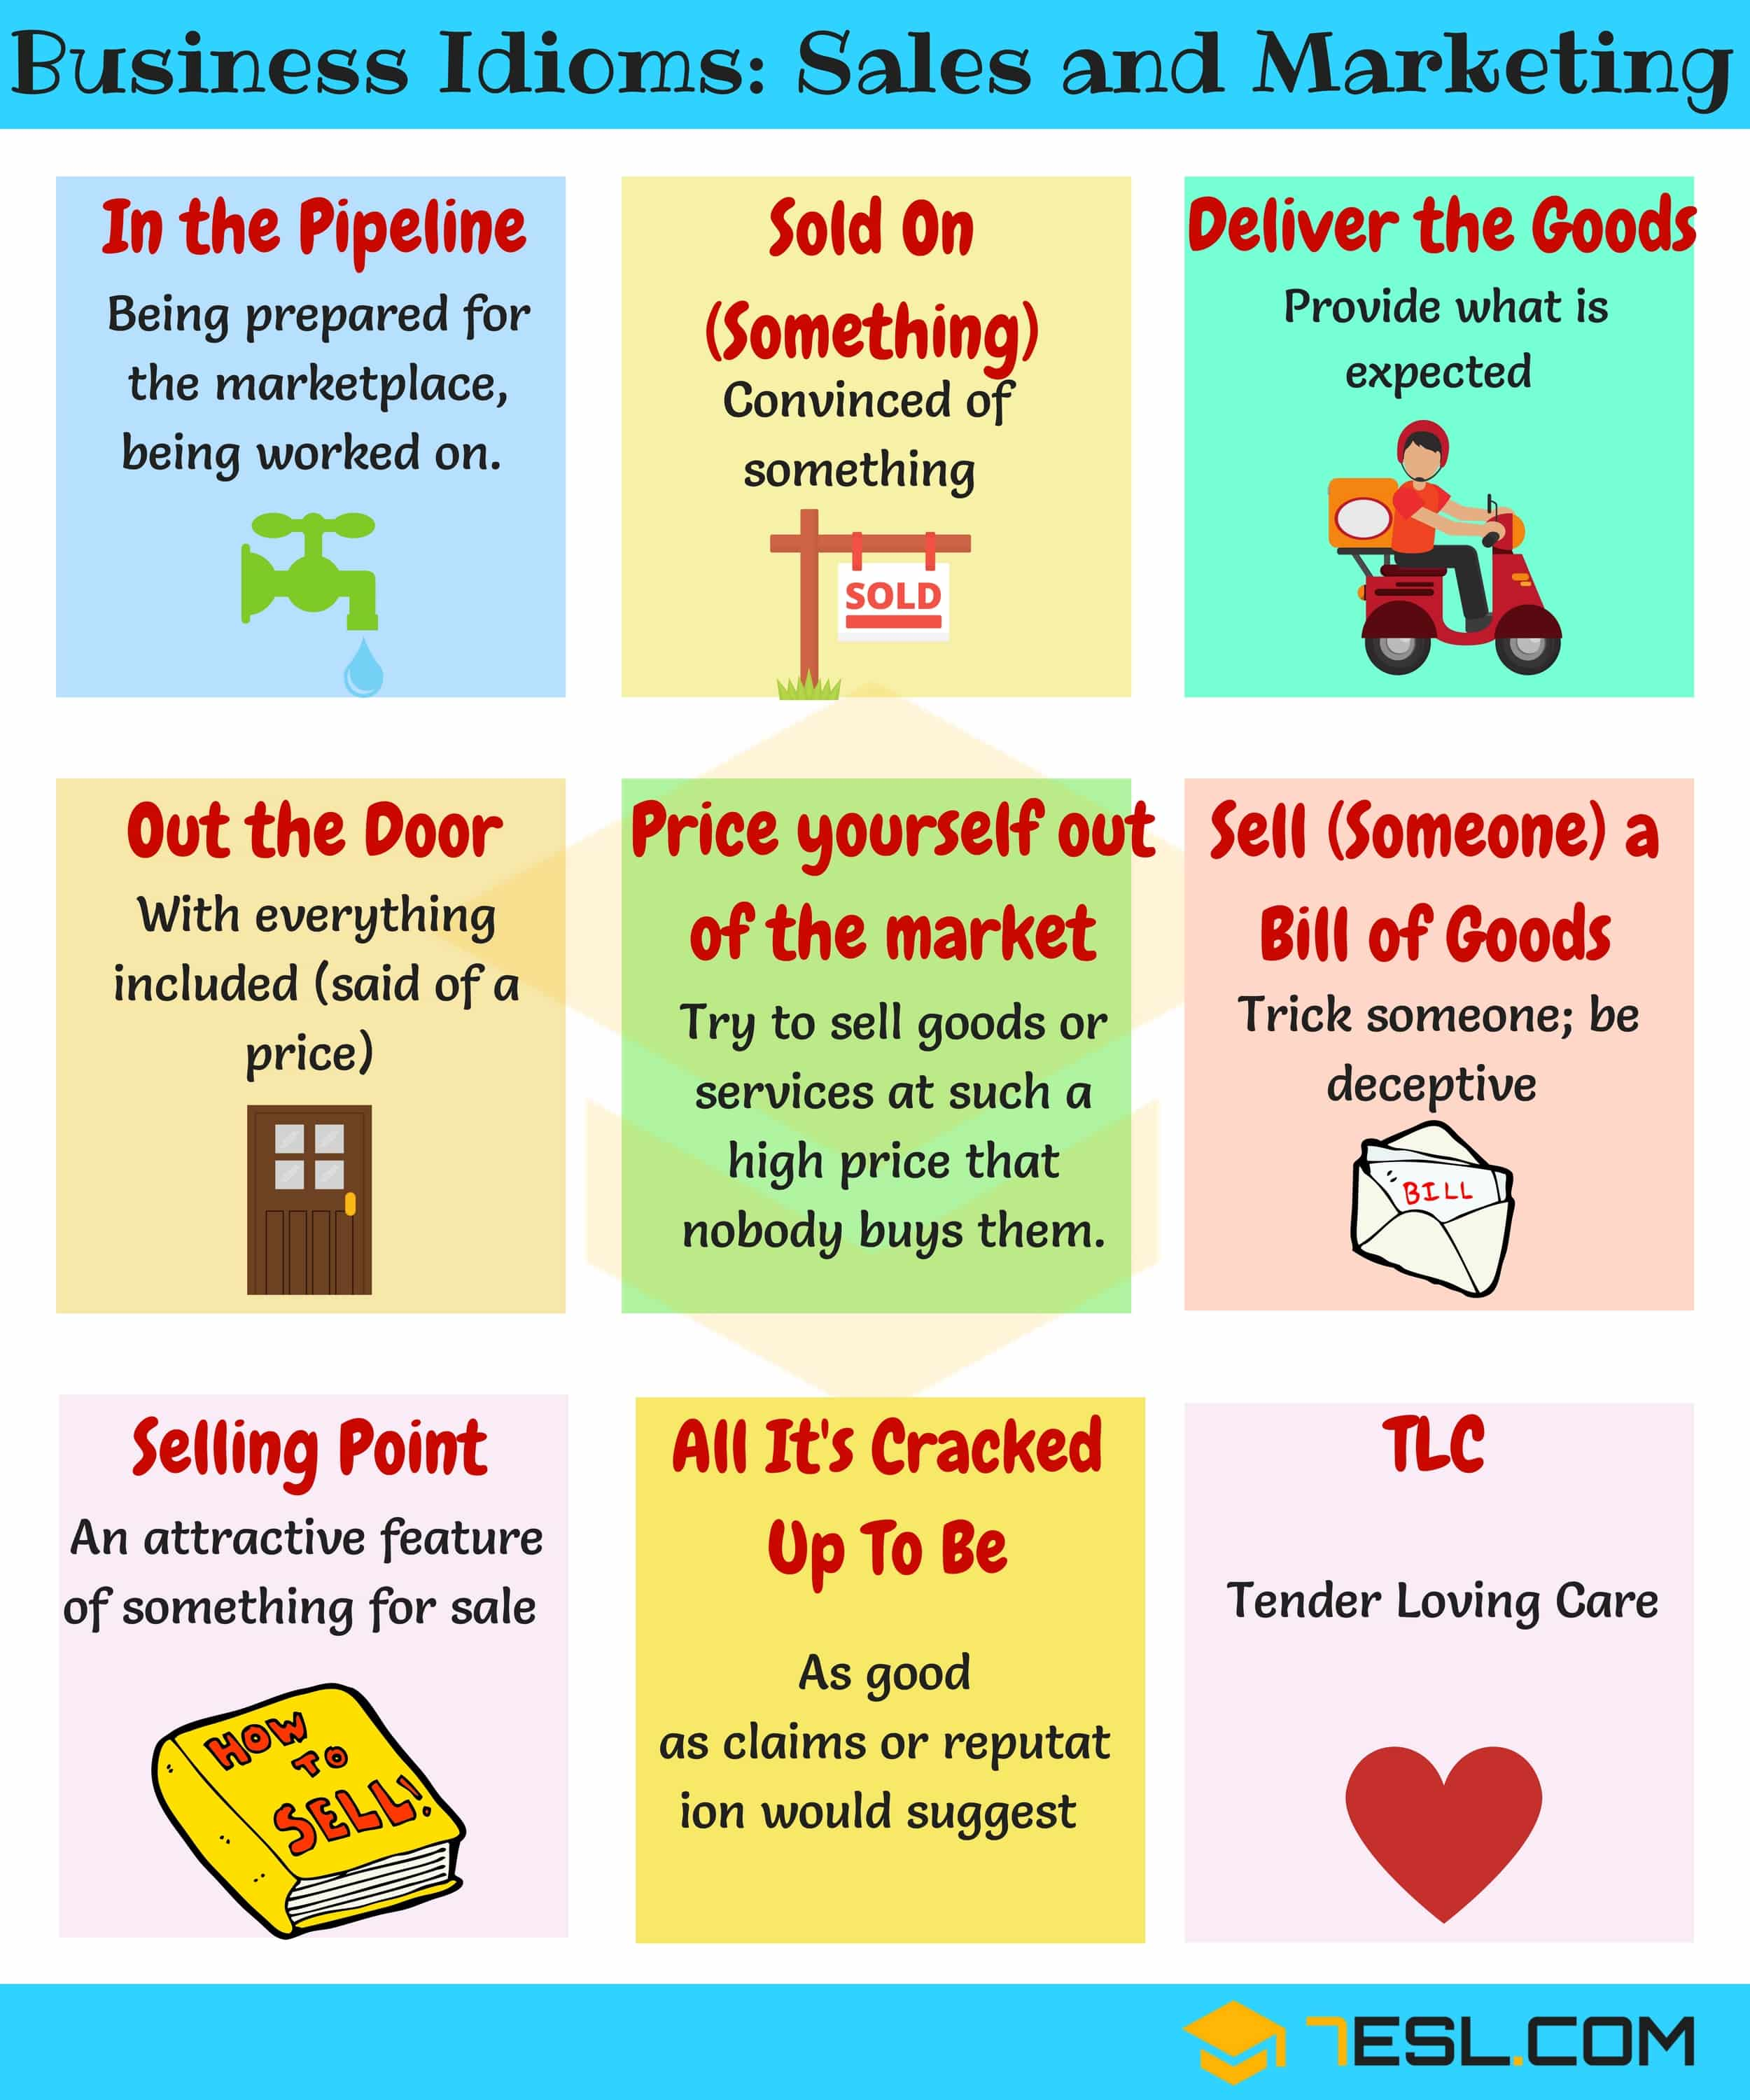 Common business expressions and idioms about sales and marketing | Business Idioms Image 4